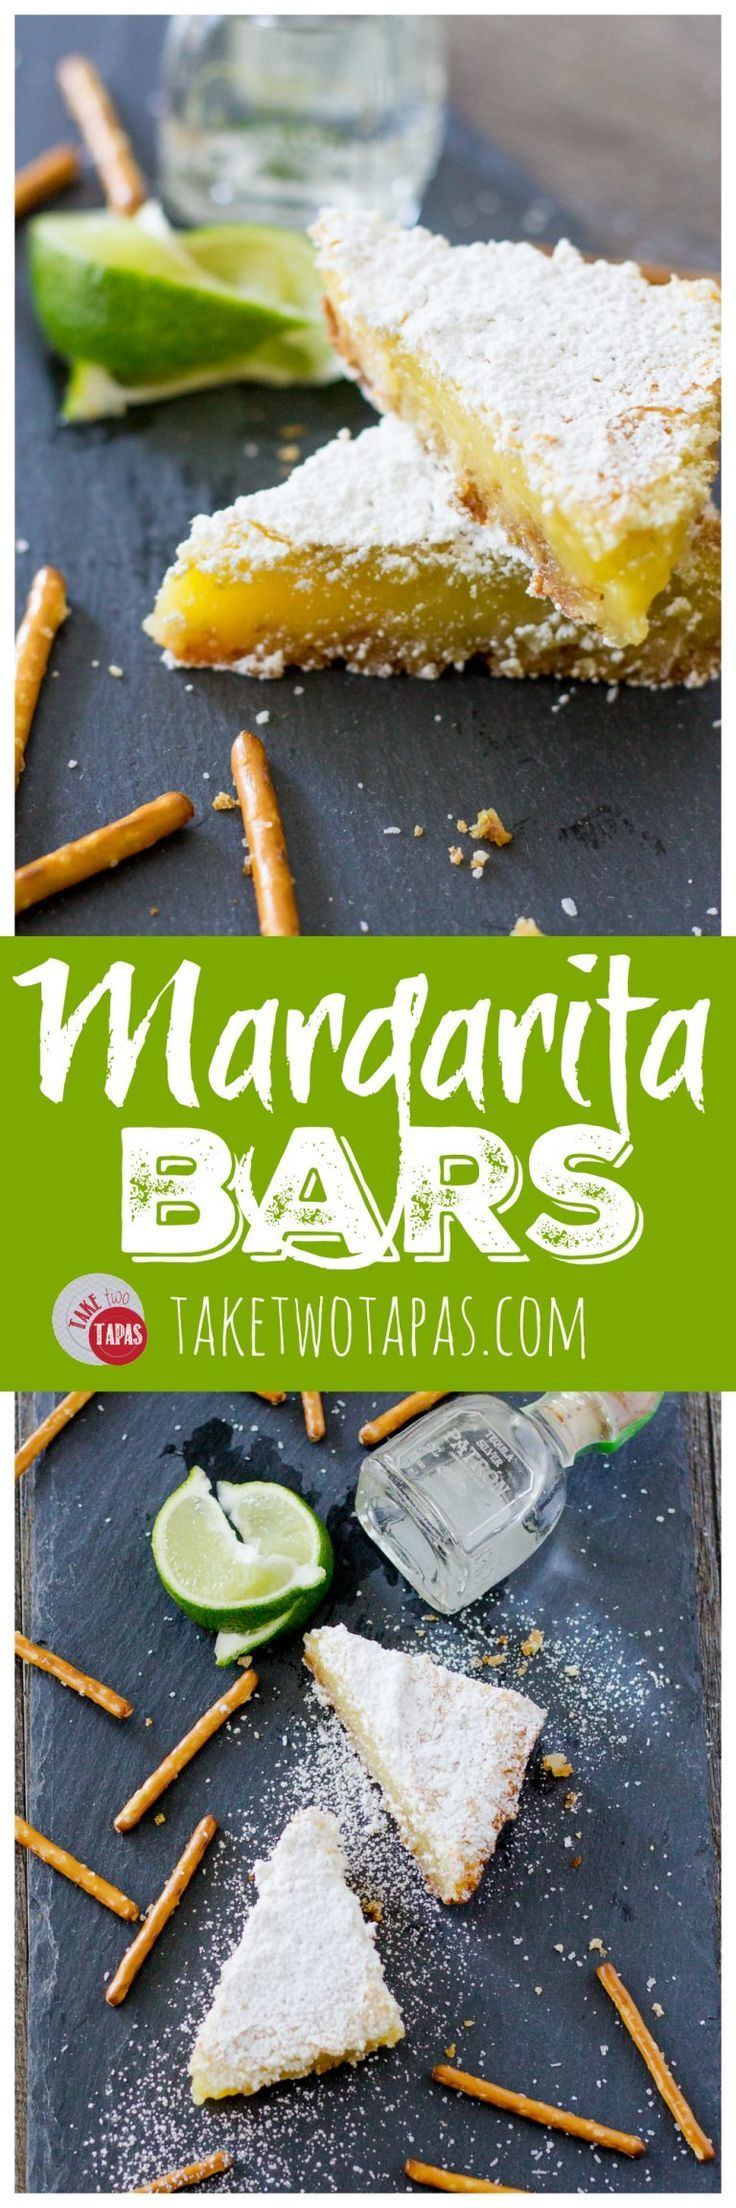 My favorite cocktail is now a dessert bar. Margarita Bars have a creamy and tart lime filling complete with a splash of tequila that sits atop a shortbread salty pretzel crust. A crispy top dusted with powdered sugar finishes off of this amazing dessert.